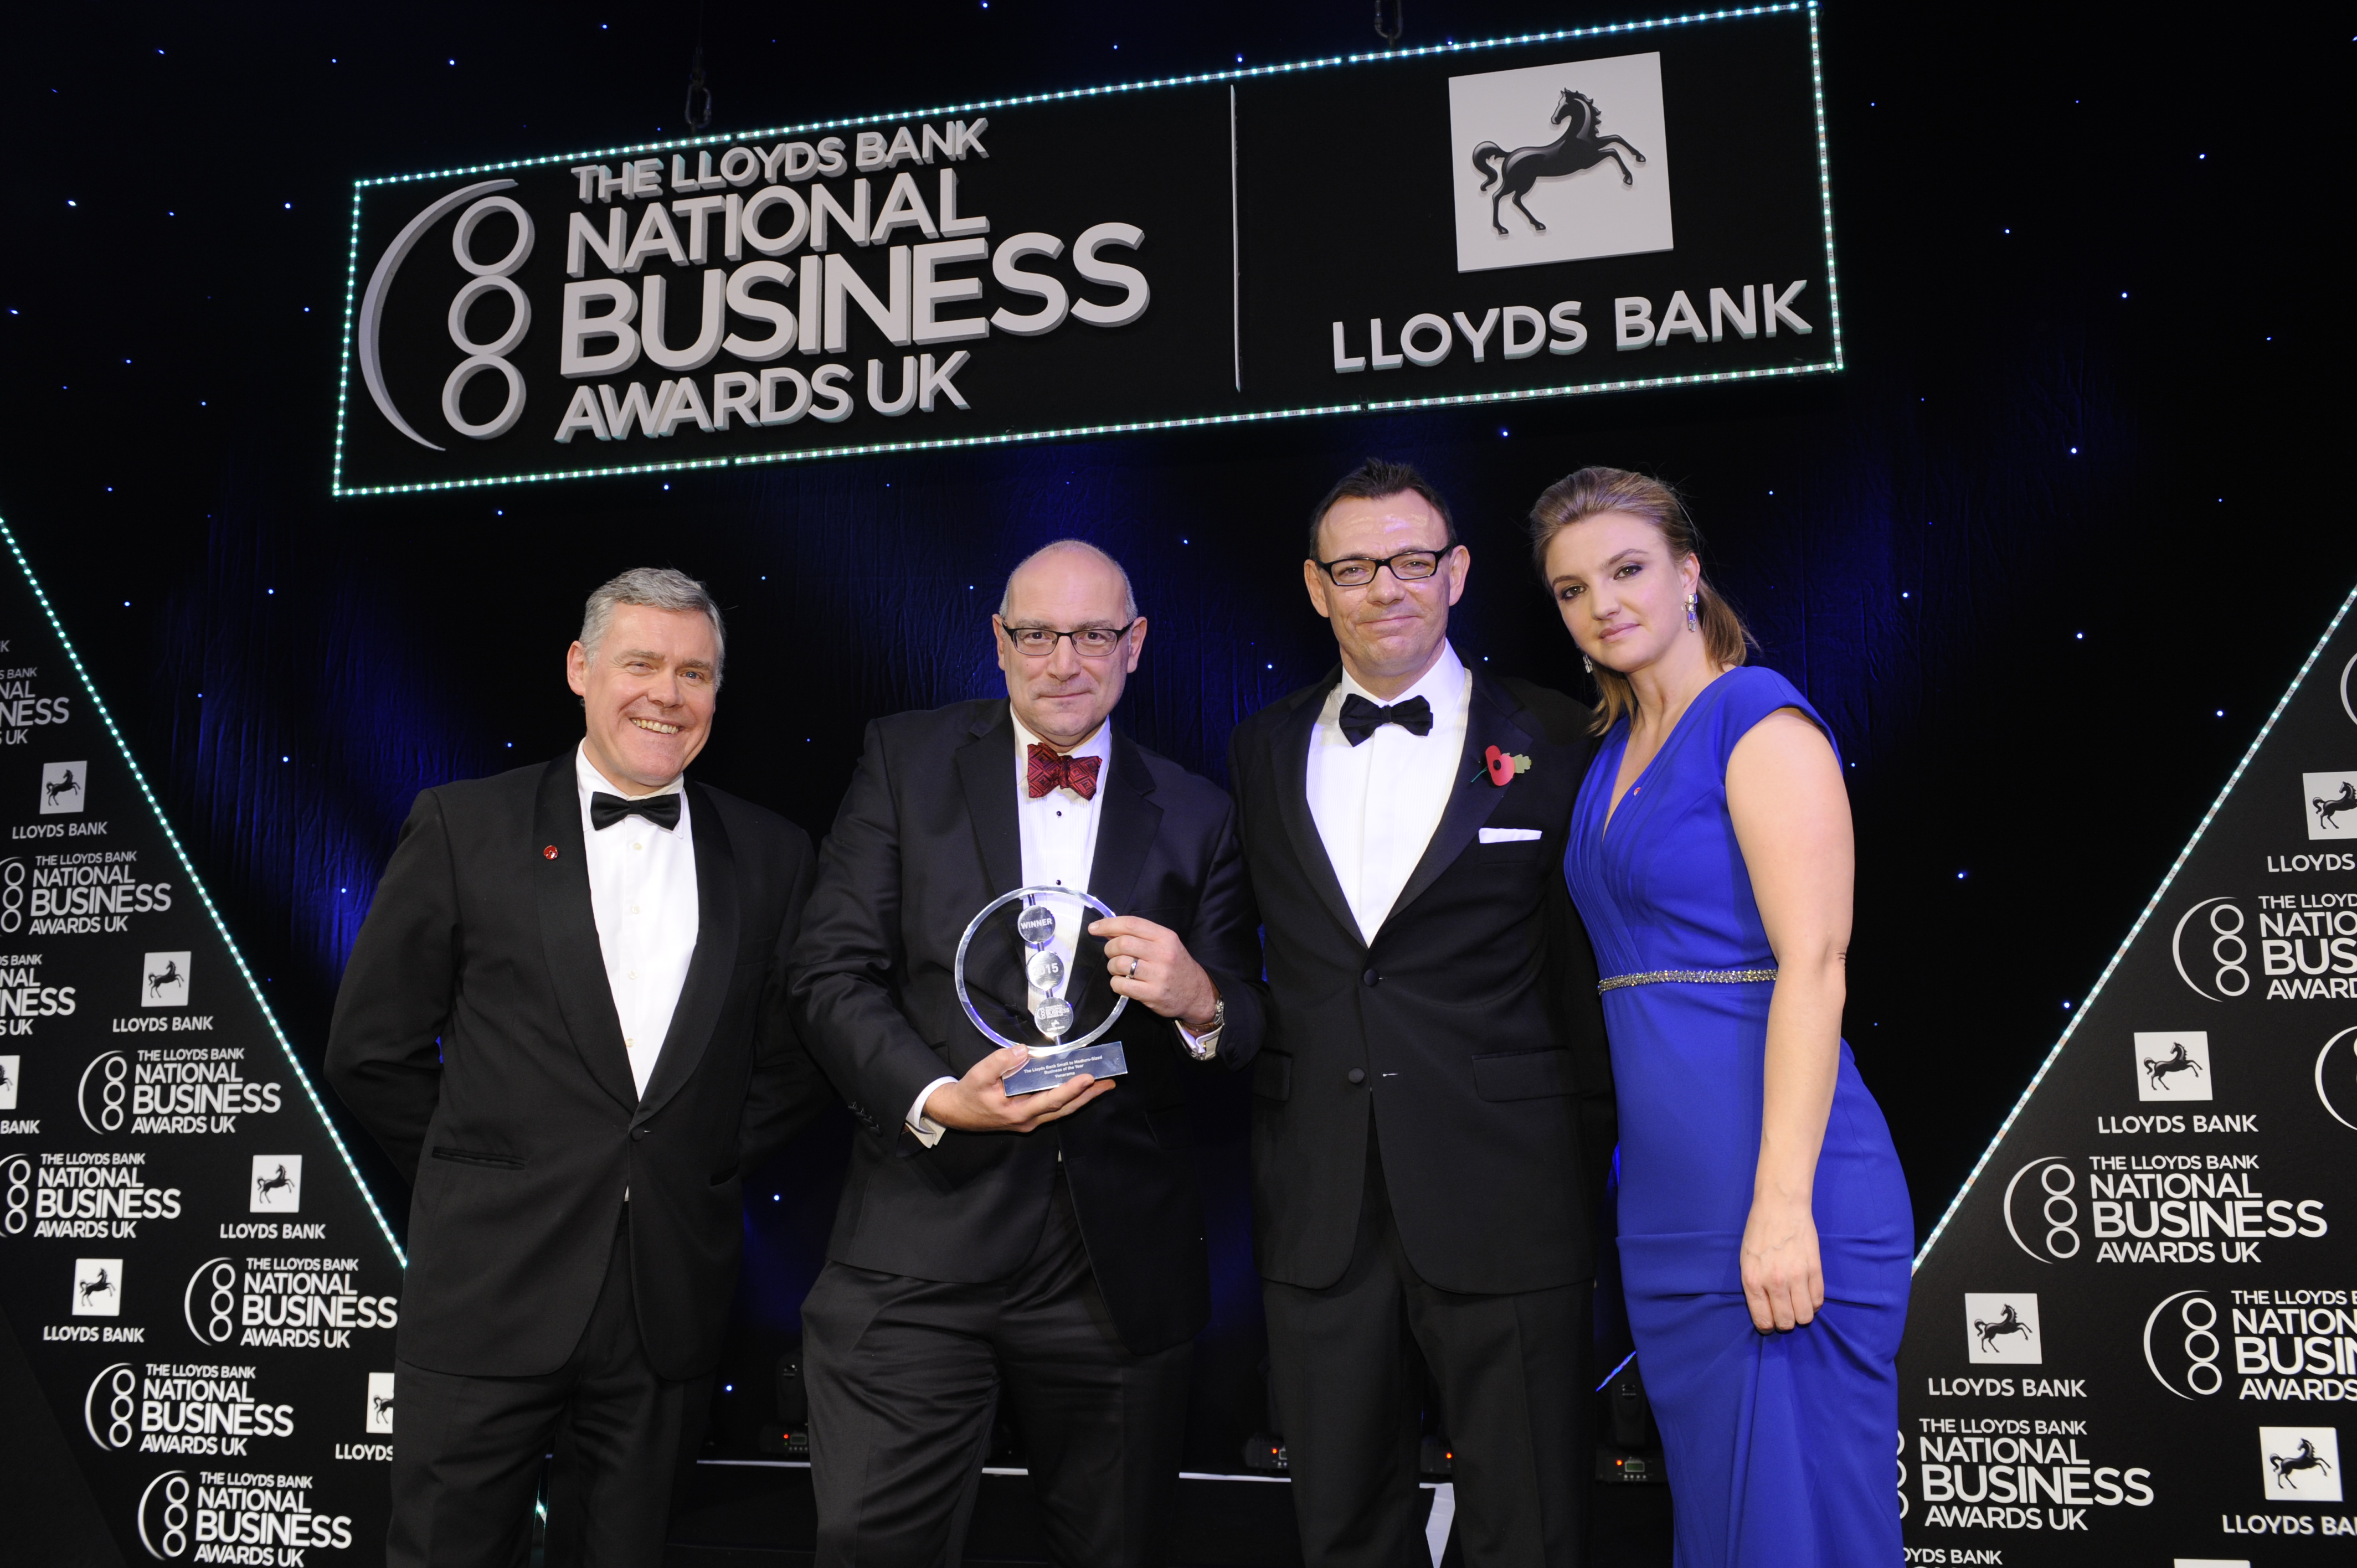 Vanarama wins prestigious Lloyds Bank National Business Award